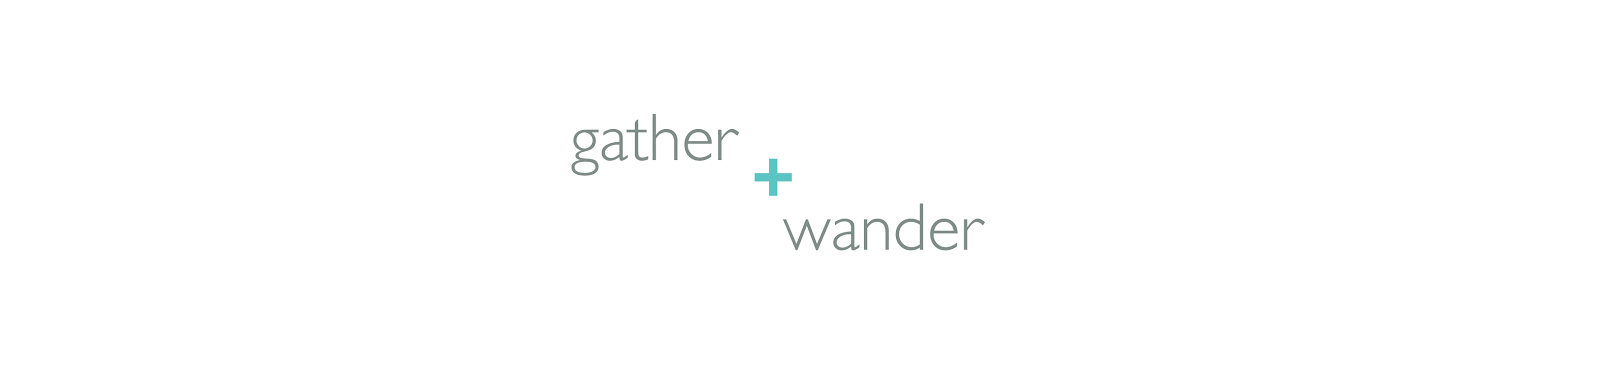 gather + wander